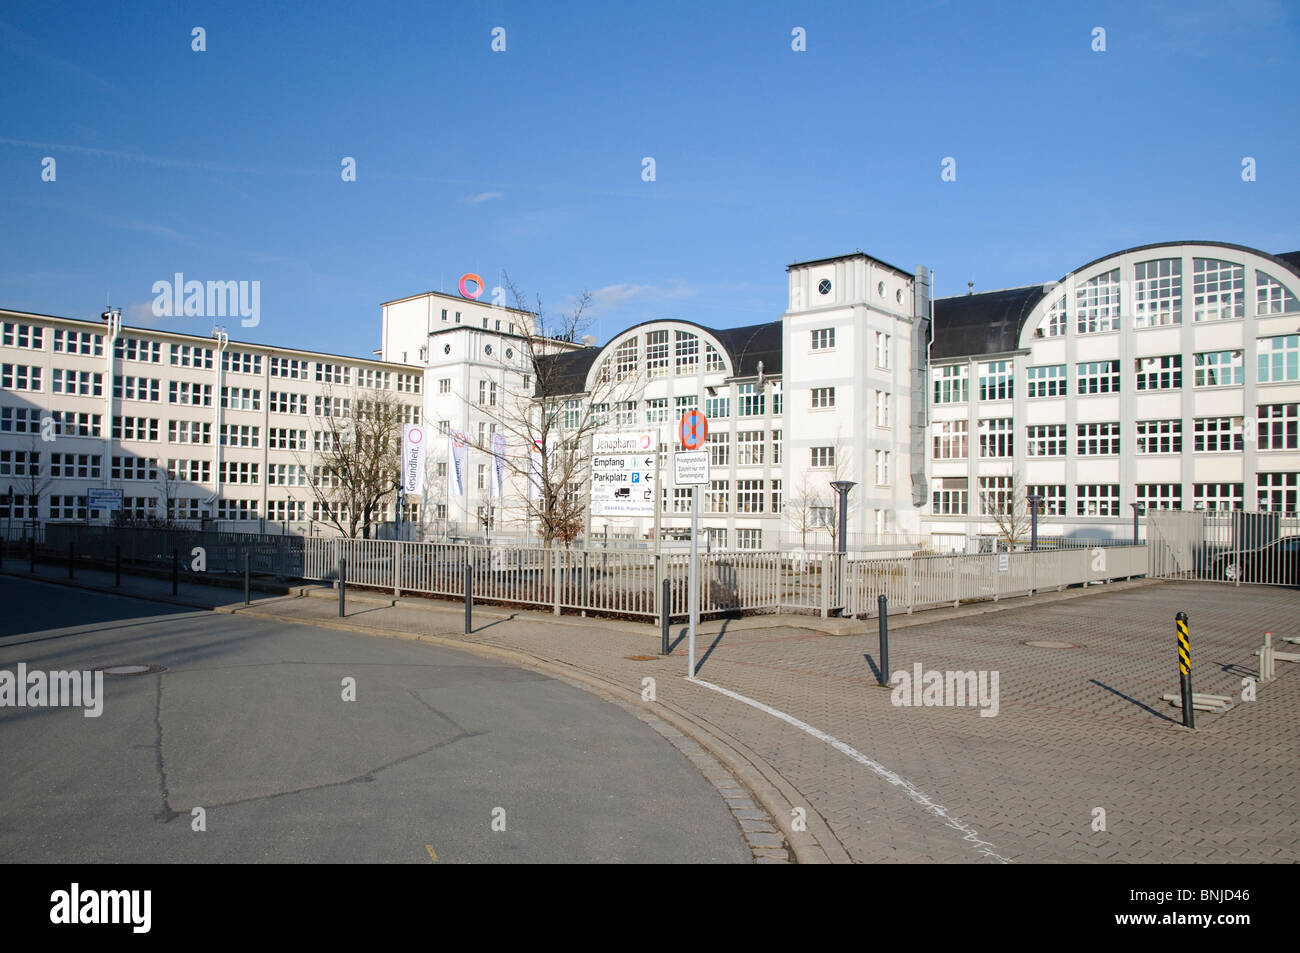 Architecture field recording FRG building federal republic business Germany Europe company companies buildings constructions - Stock Image